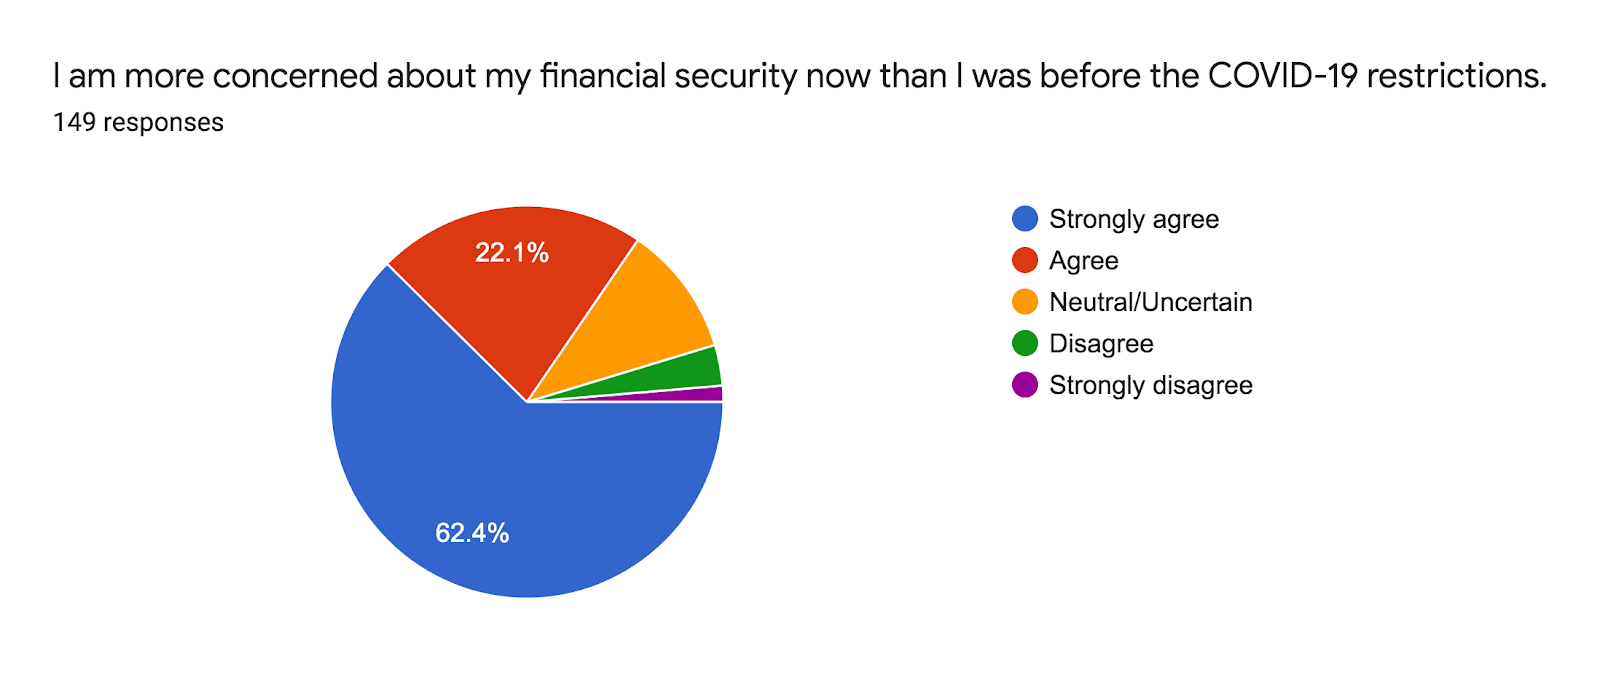 Forms response chart. Question title: I am more concerned about my financial security now than I was before the COVID-19 restrictions.. Number of responses: 149 responses.